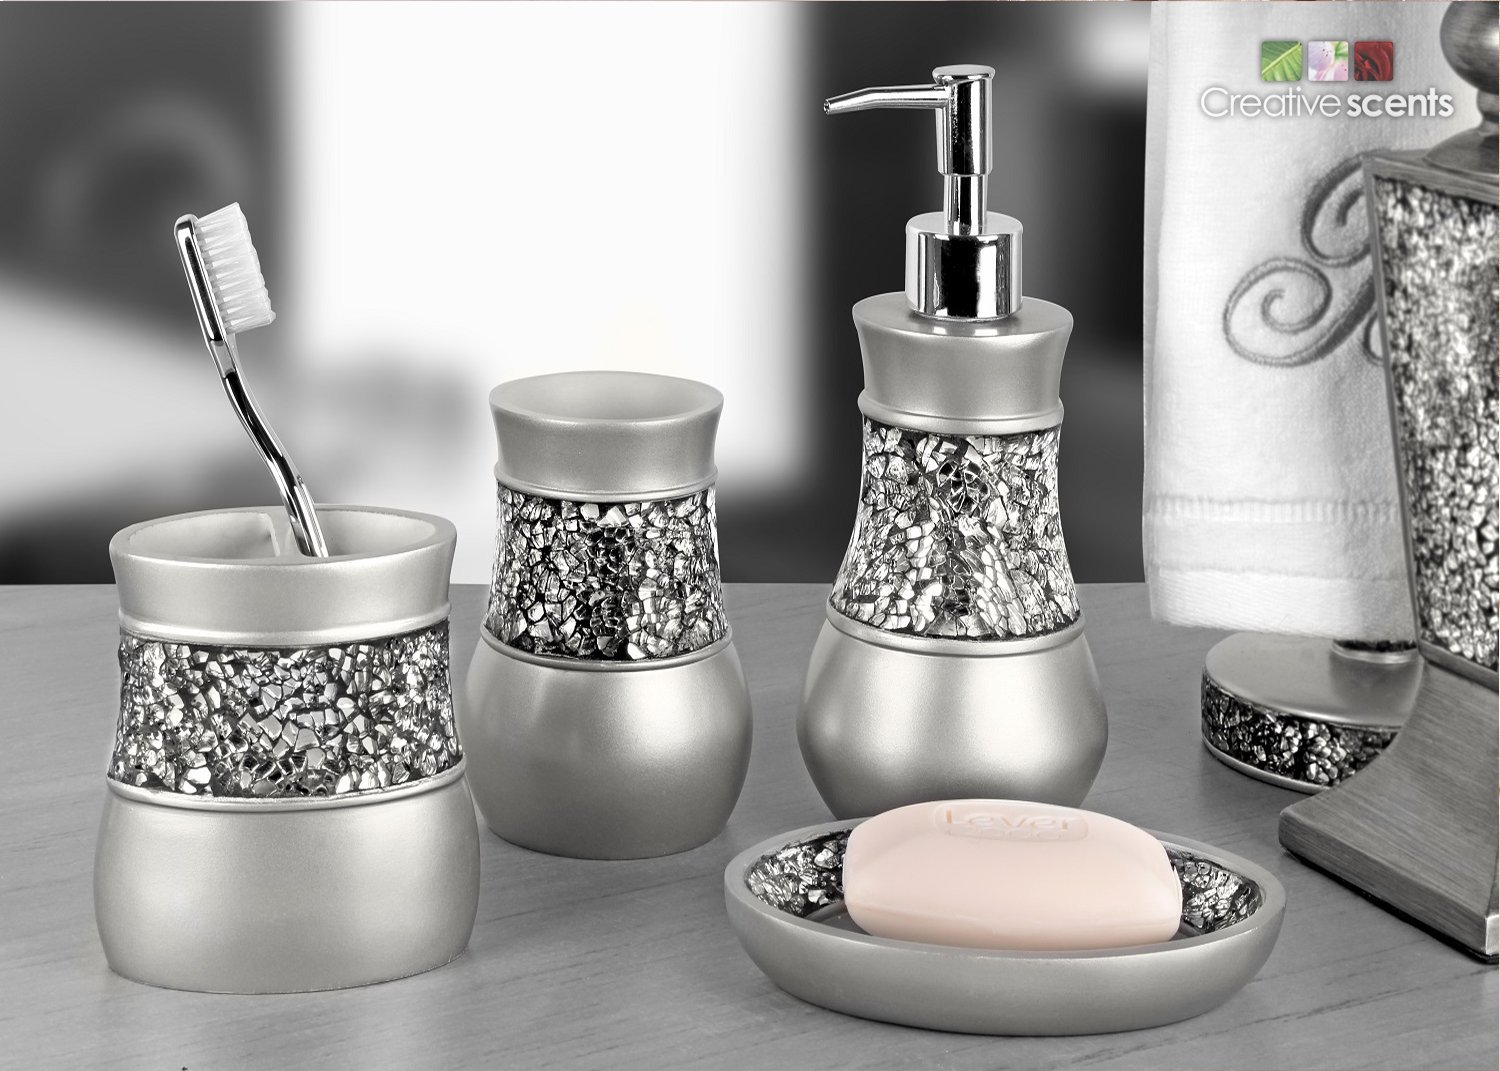 Amazon.com: Creative Scents Brushed Nickel Bathroom Accessories Set, 4  Piece Bath Ensemble, Bath Set Collection Features Soap Dispenser Pump, ...